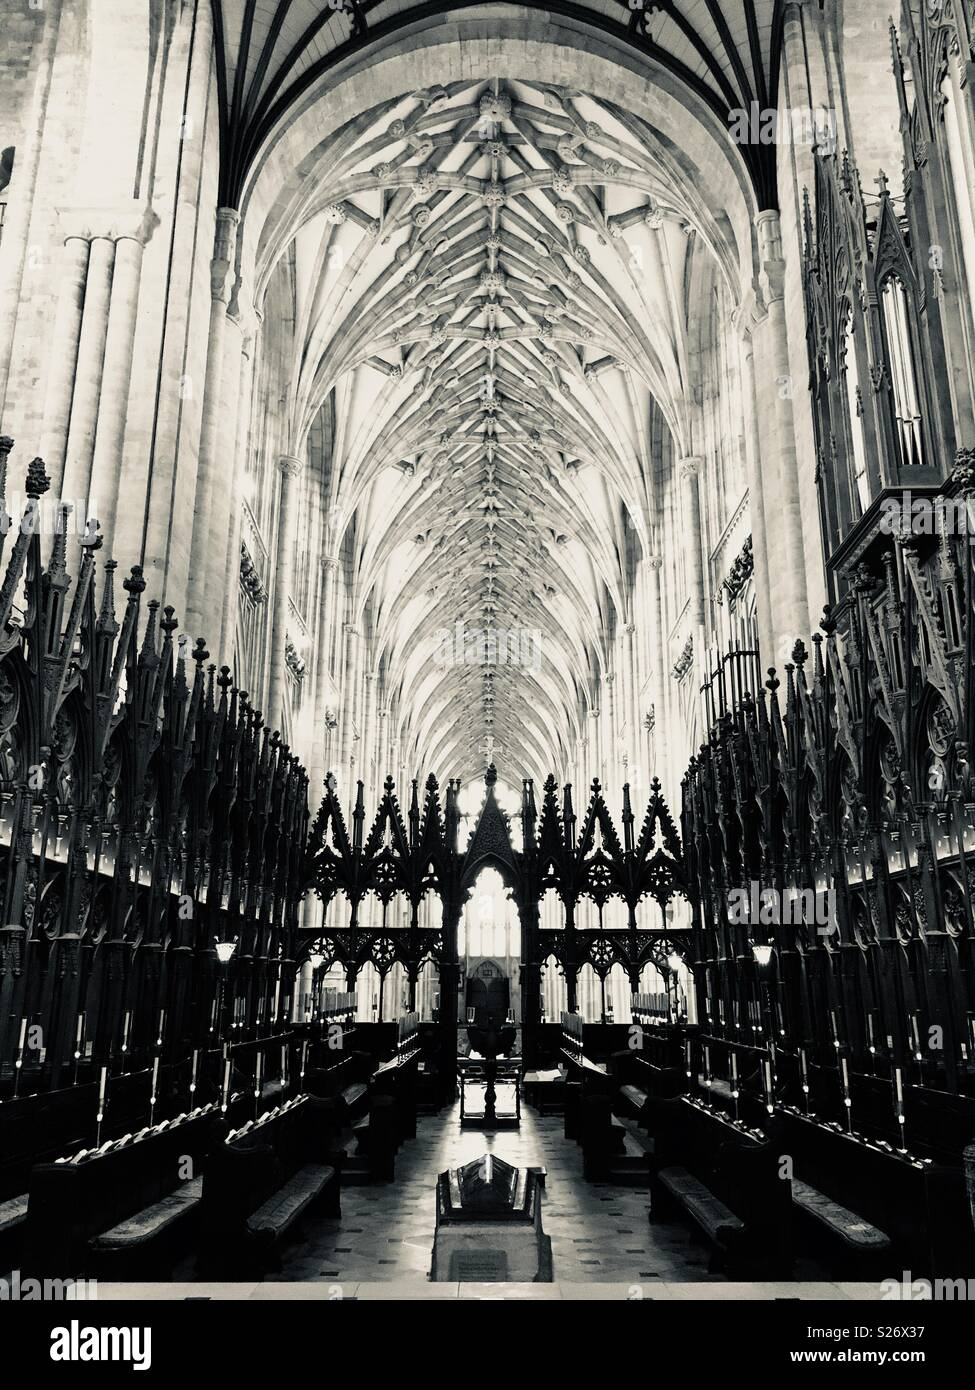 Winchester cathedral interior - Stock Image